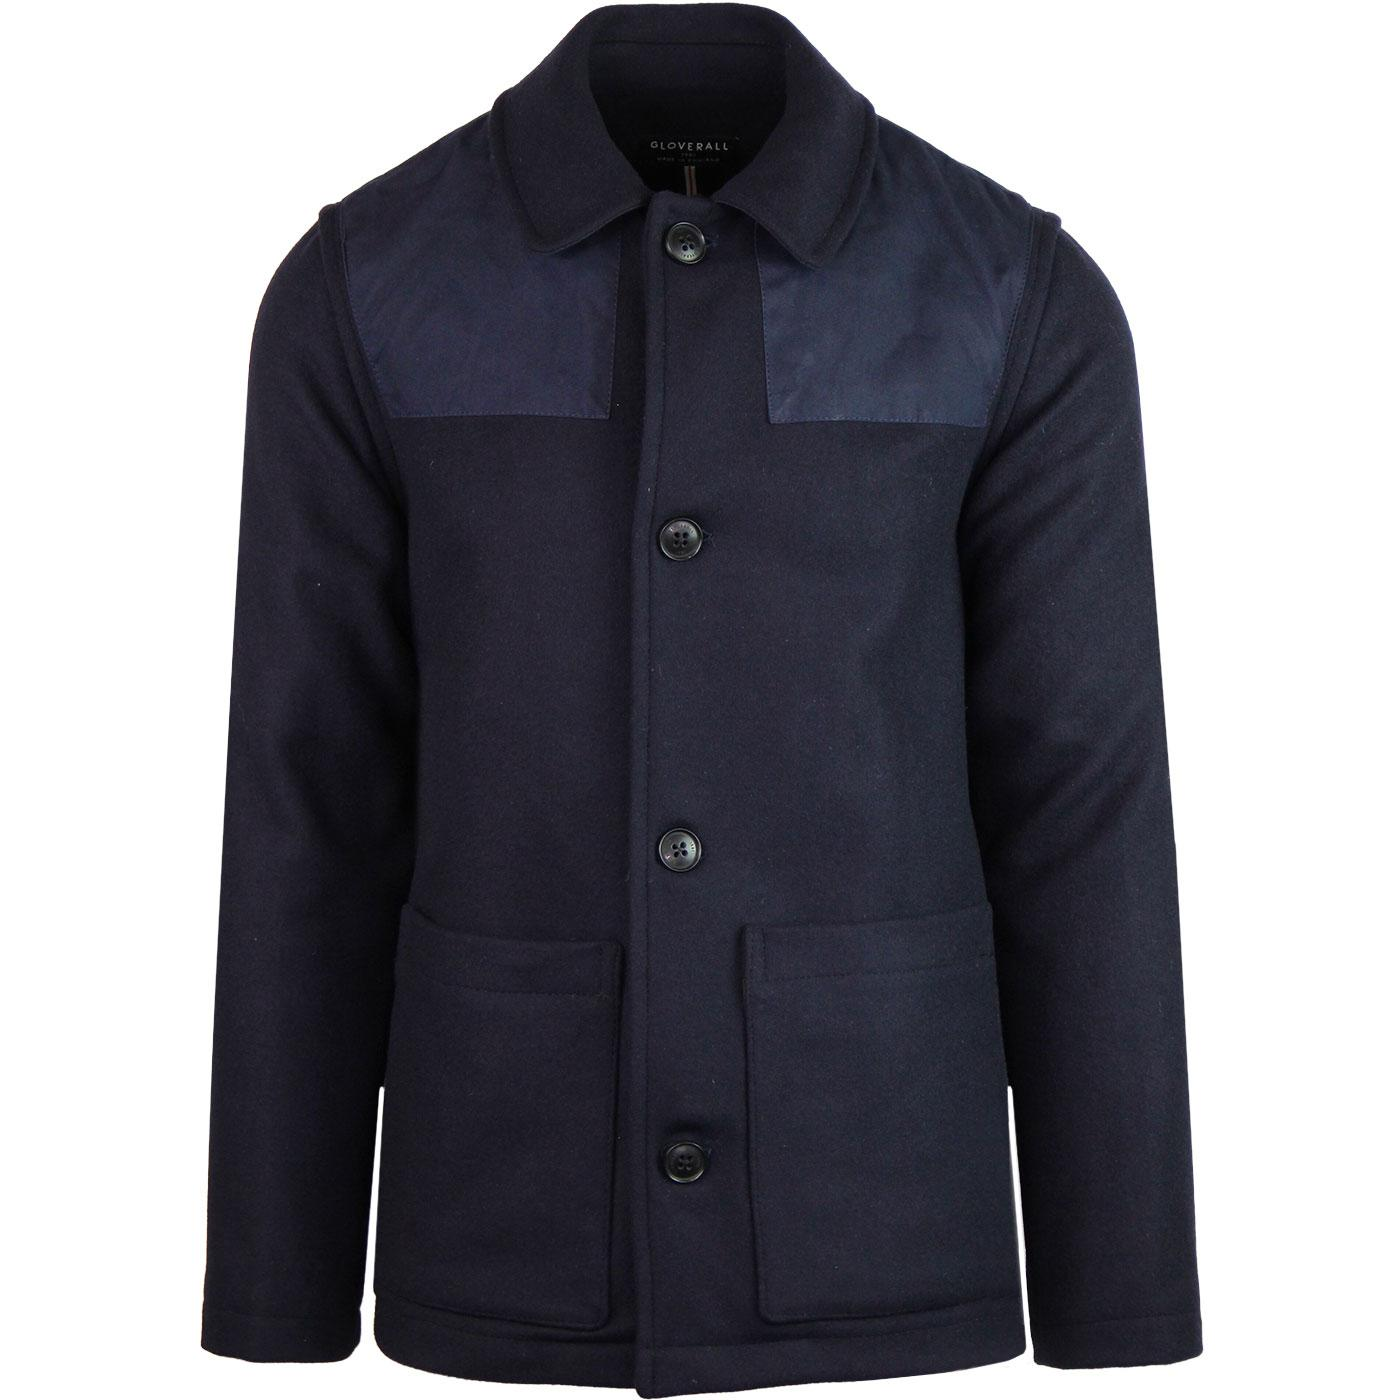 Collins GLOVERALL Made in England Donkey Jacket